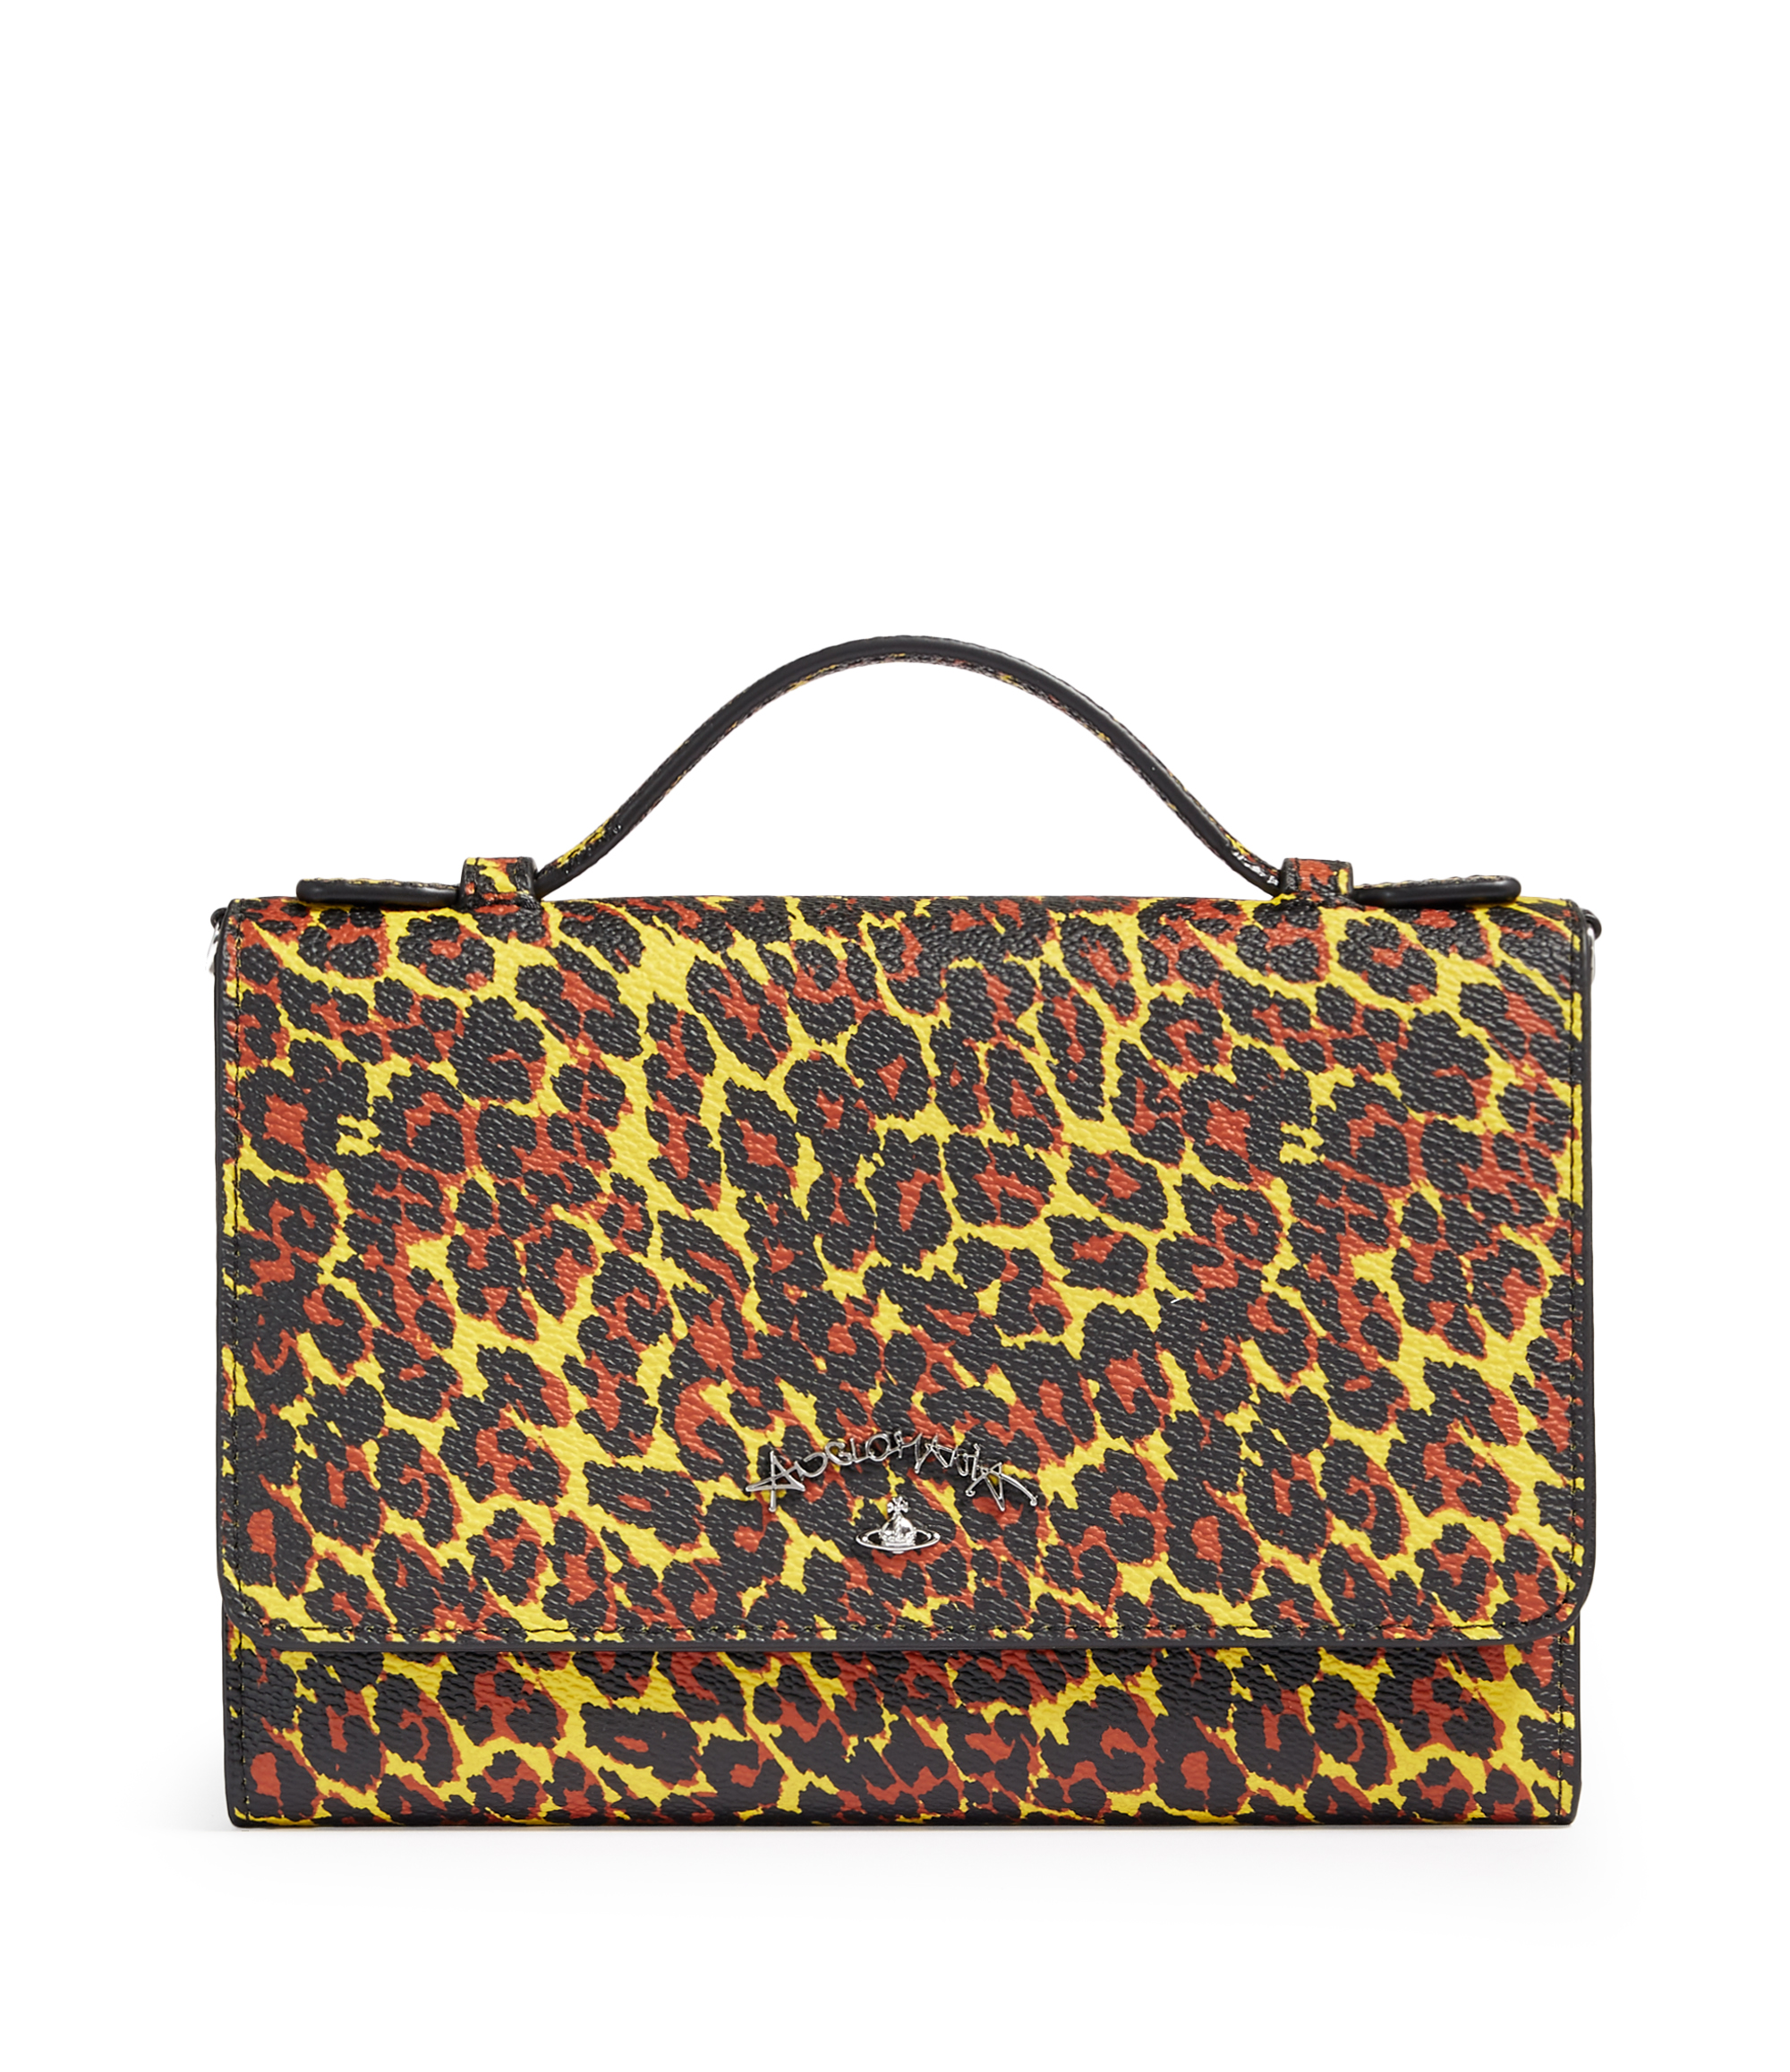 Vivienne Westwood Leopard iPhone Wallet 390048 Yellow